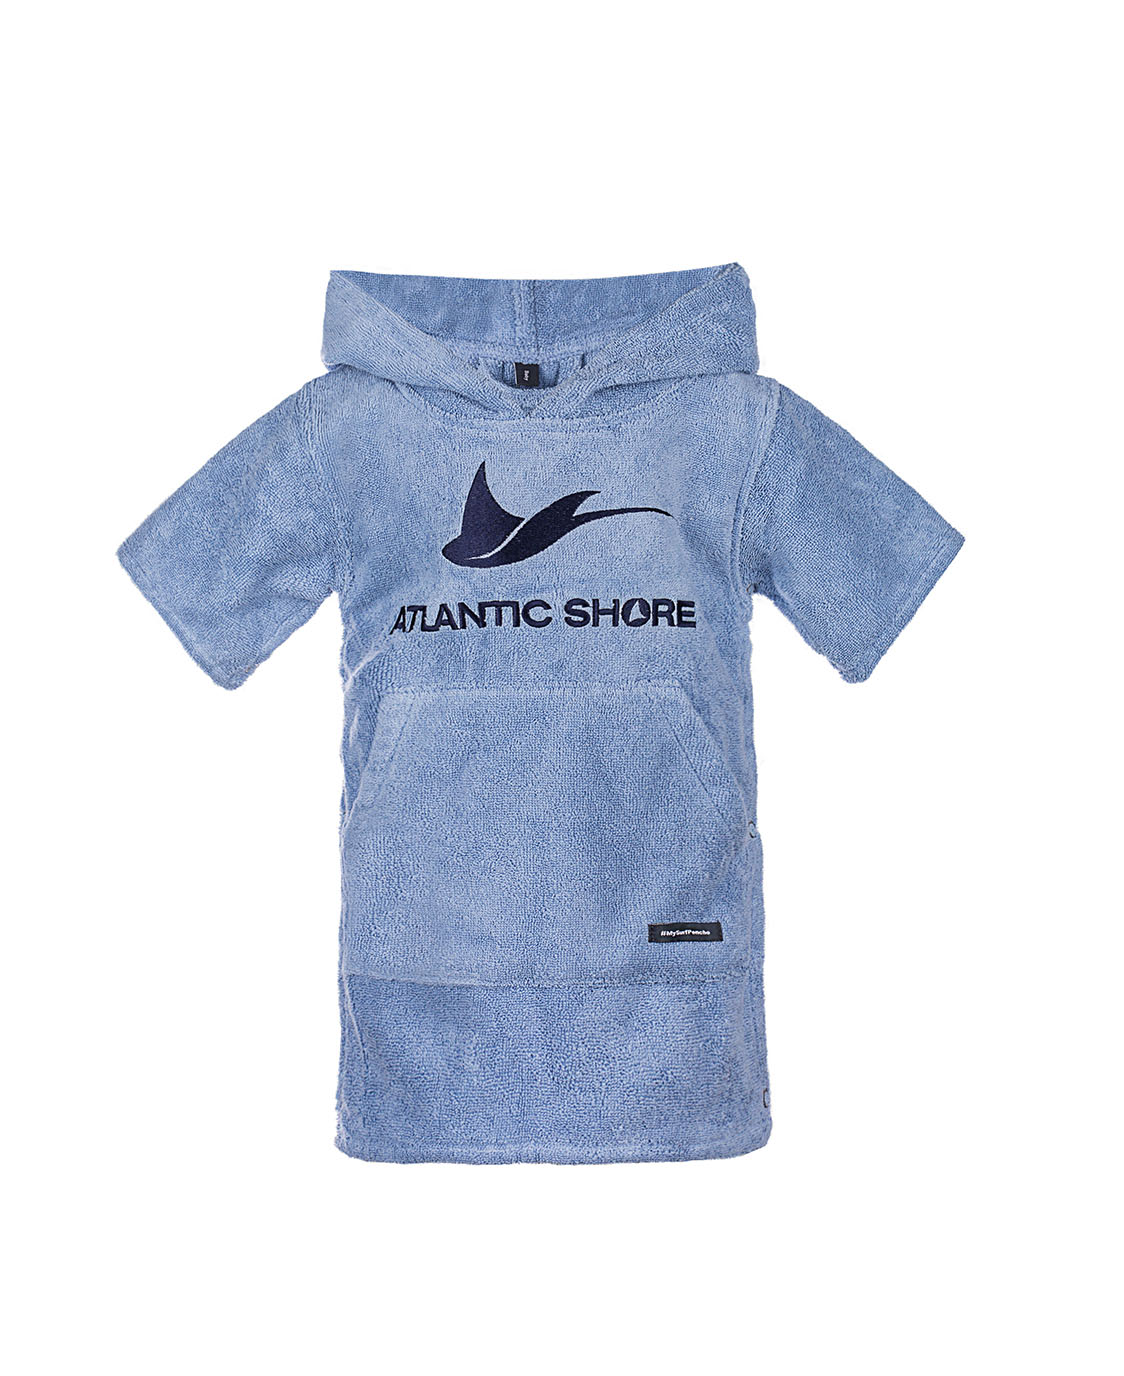 Atlantic Shore | Surf Poncho | Basic | Baby | Light Blue